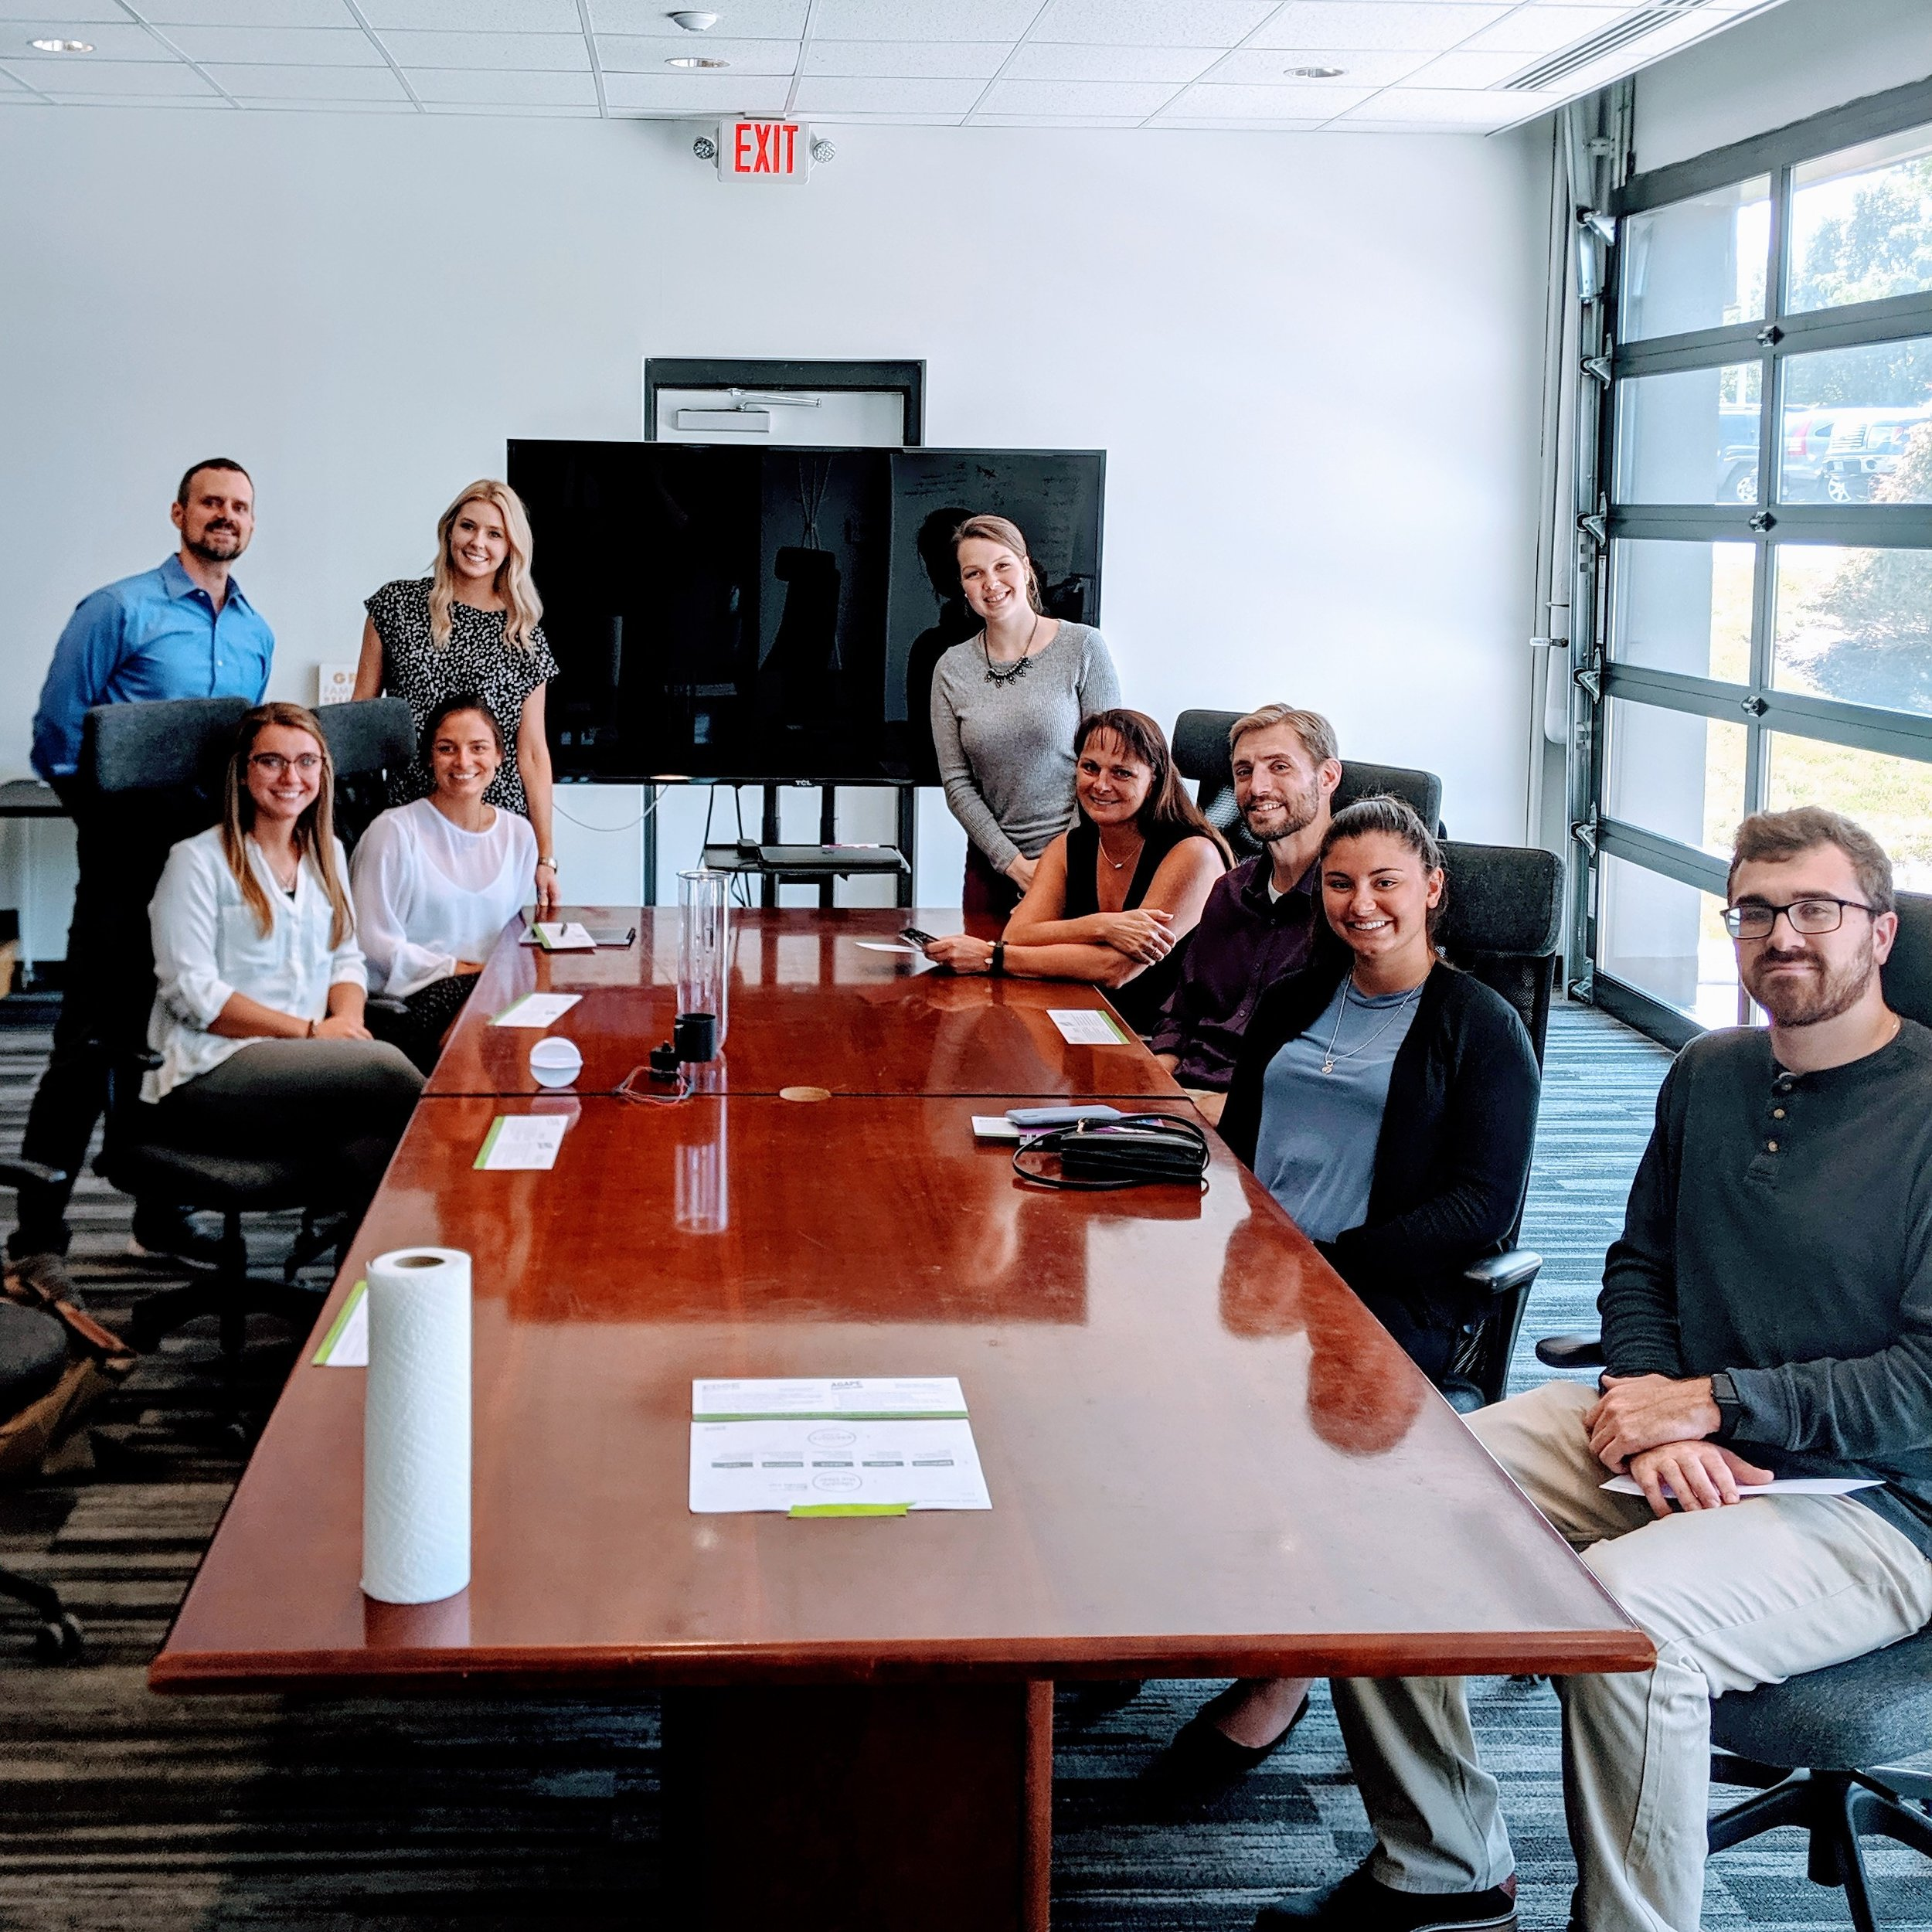 Columbus Chamber of Commerce  Interns visit the EDGE. July 09, 2019.